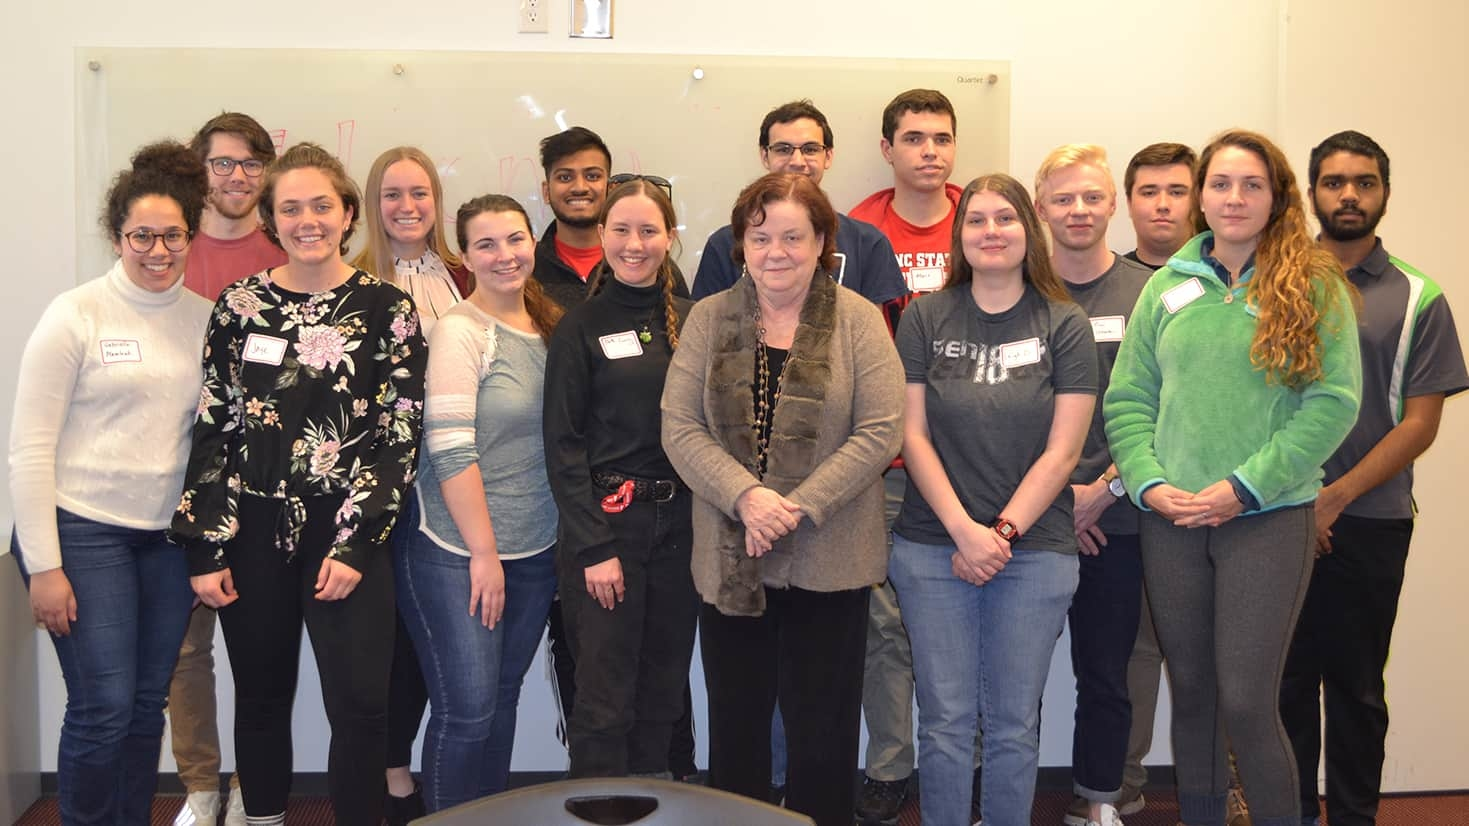 A group photo of the 2018-19 Solomon Scholars with Dean Christine McGahan